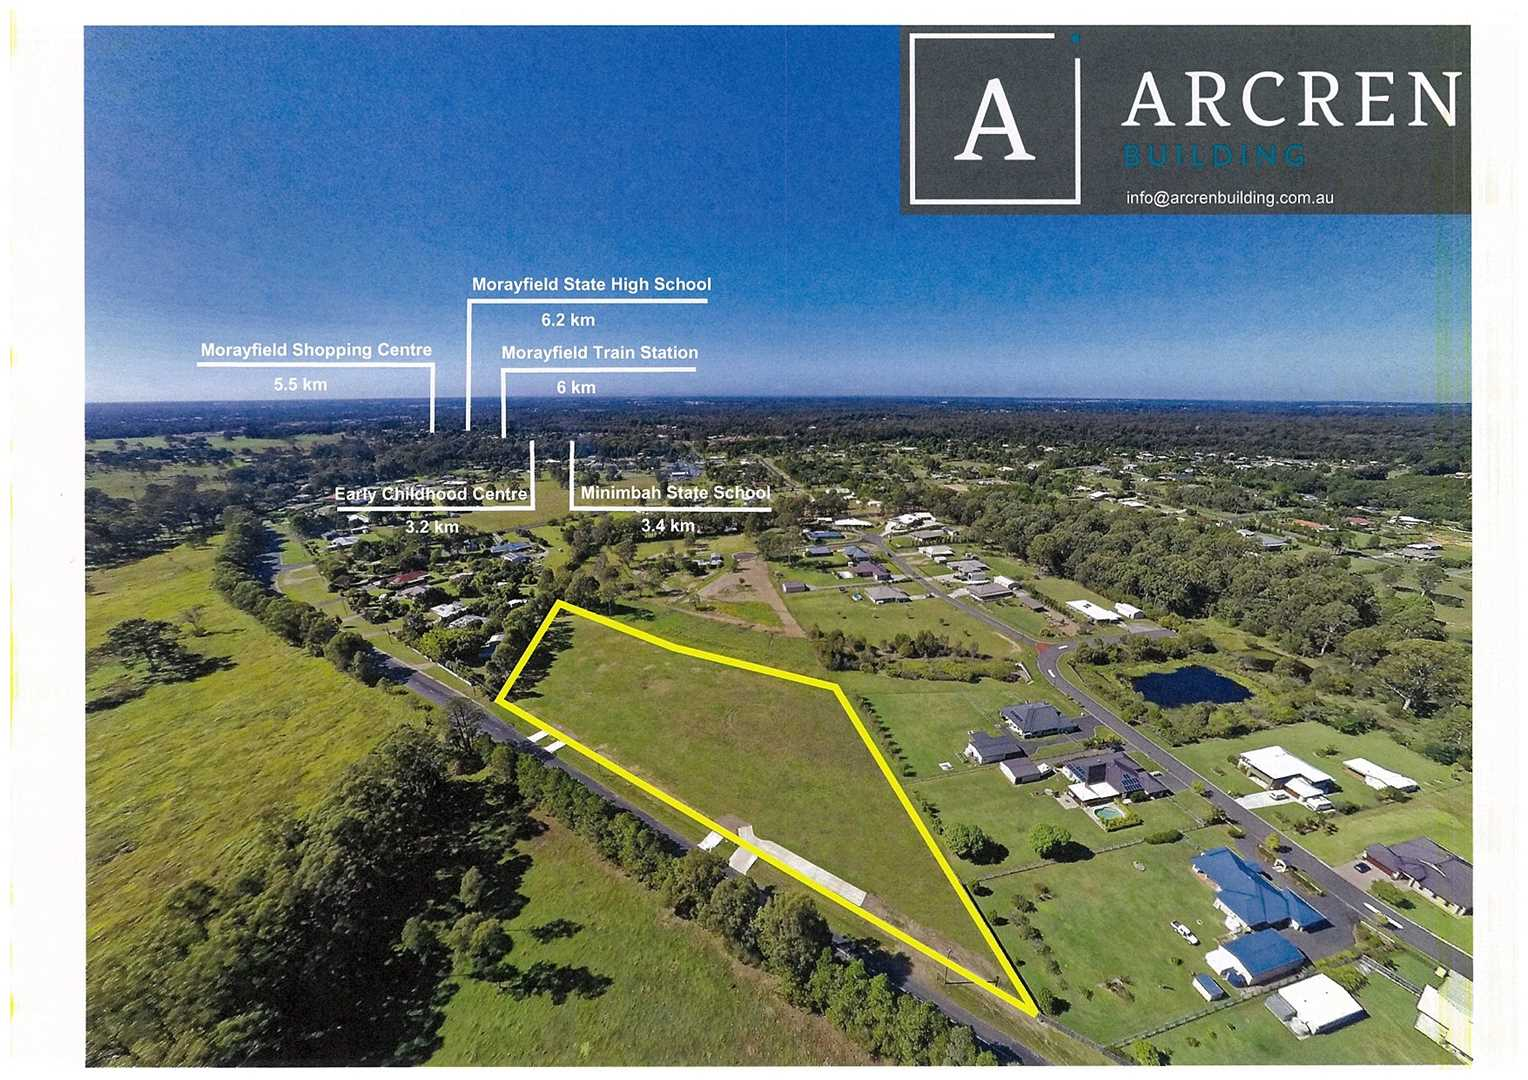 Acreage House and Land Packages